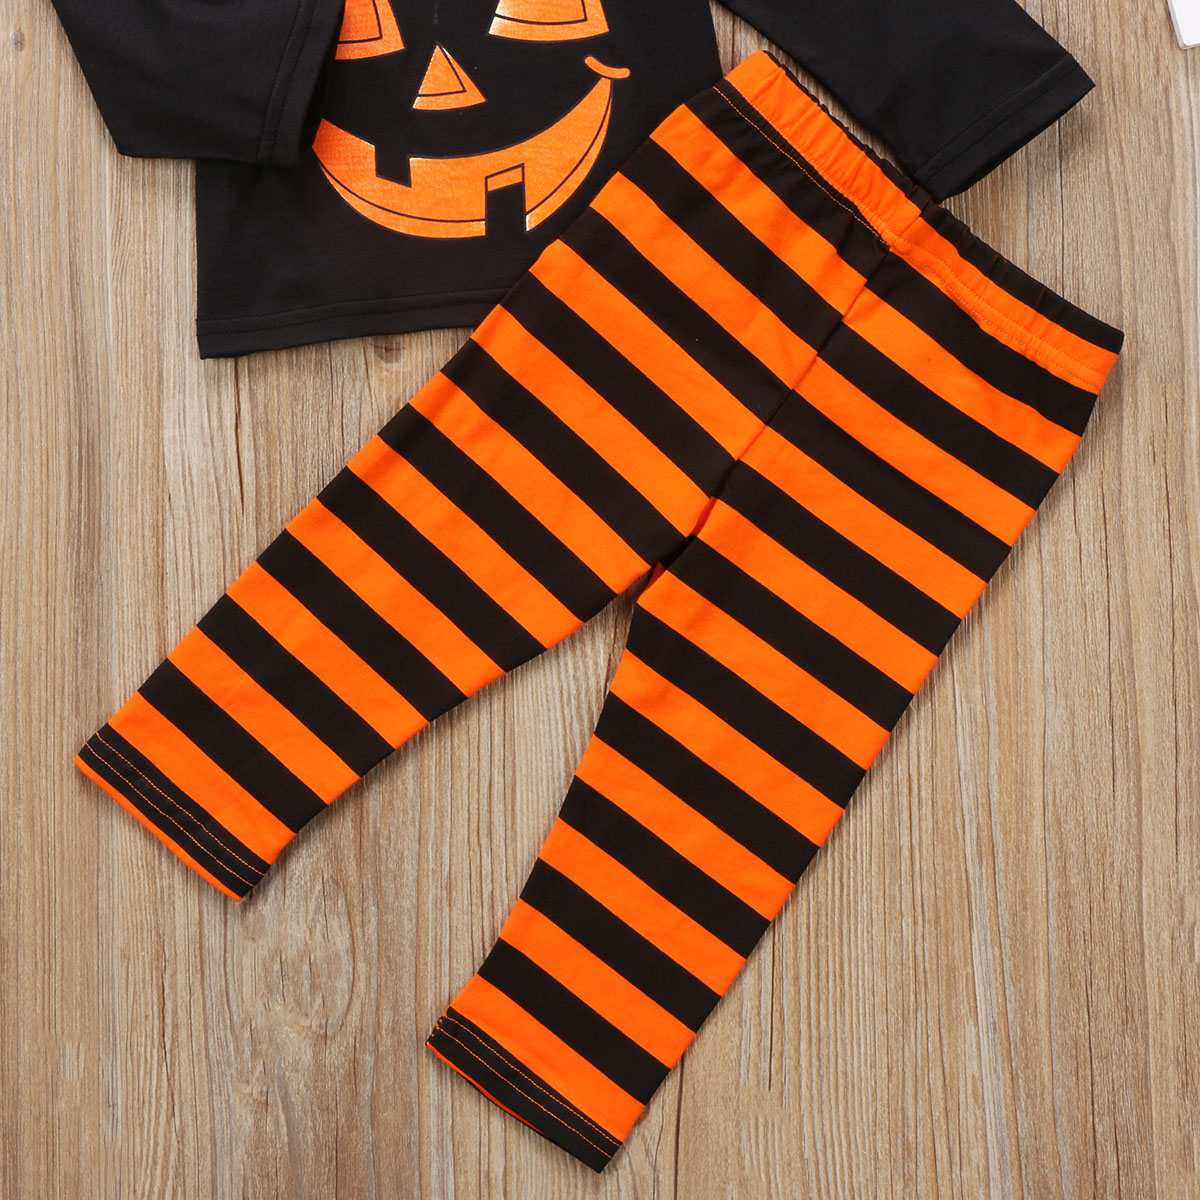 7bc8d718daf Kids Toddler Baby Girl Boy Pumpkin Face T Shirt Tops+Striped Pants Outfit  Pajamas Set Halloween Clothes-in Clothing Sets from Mother   Kids on ...